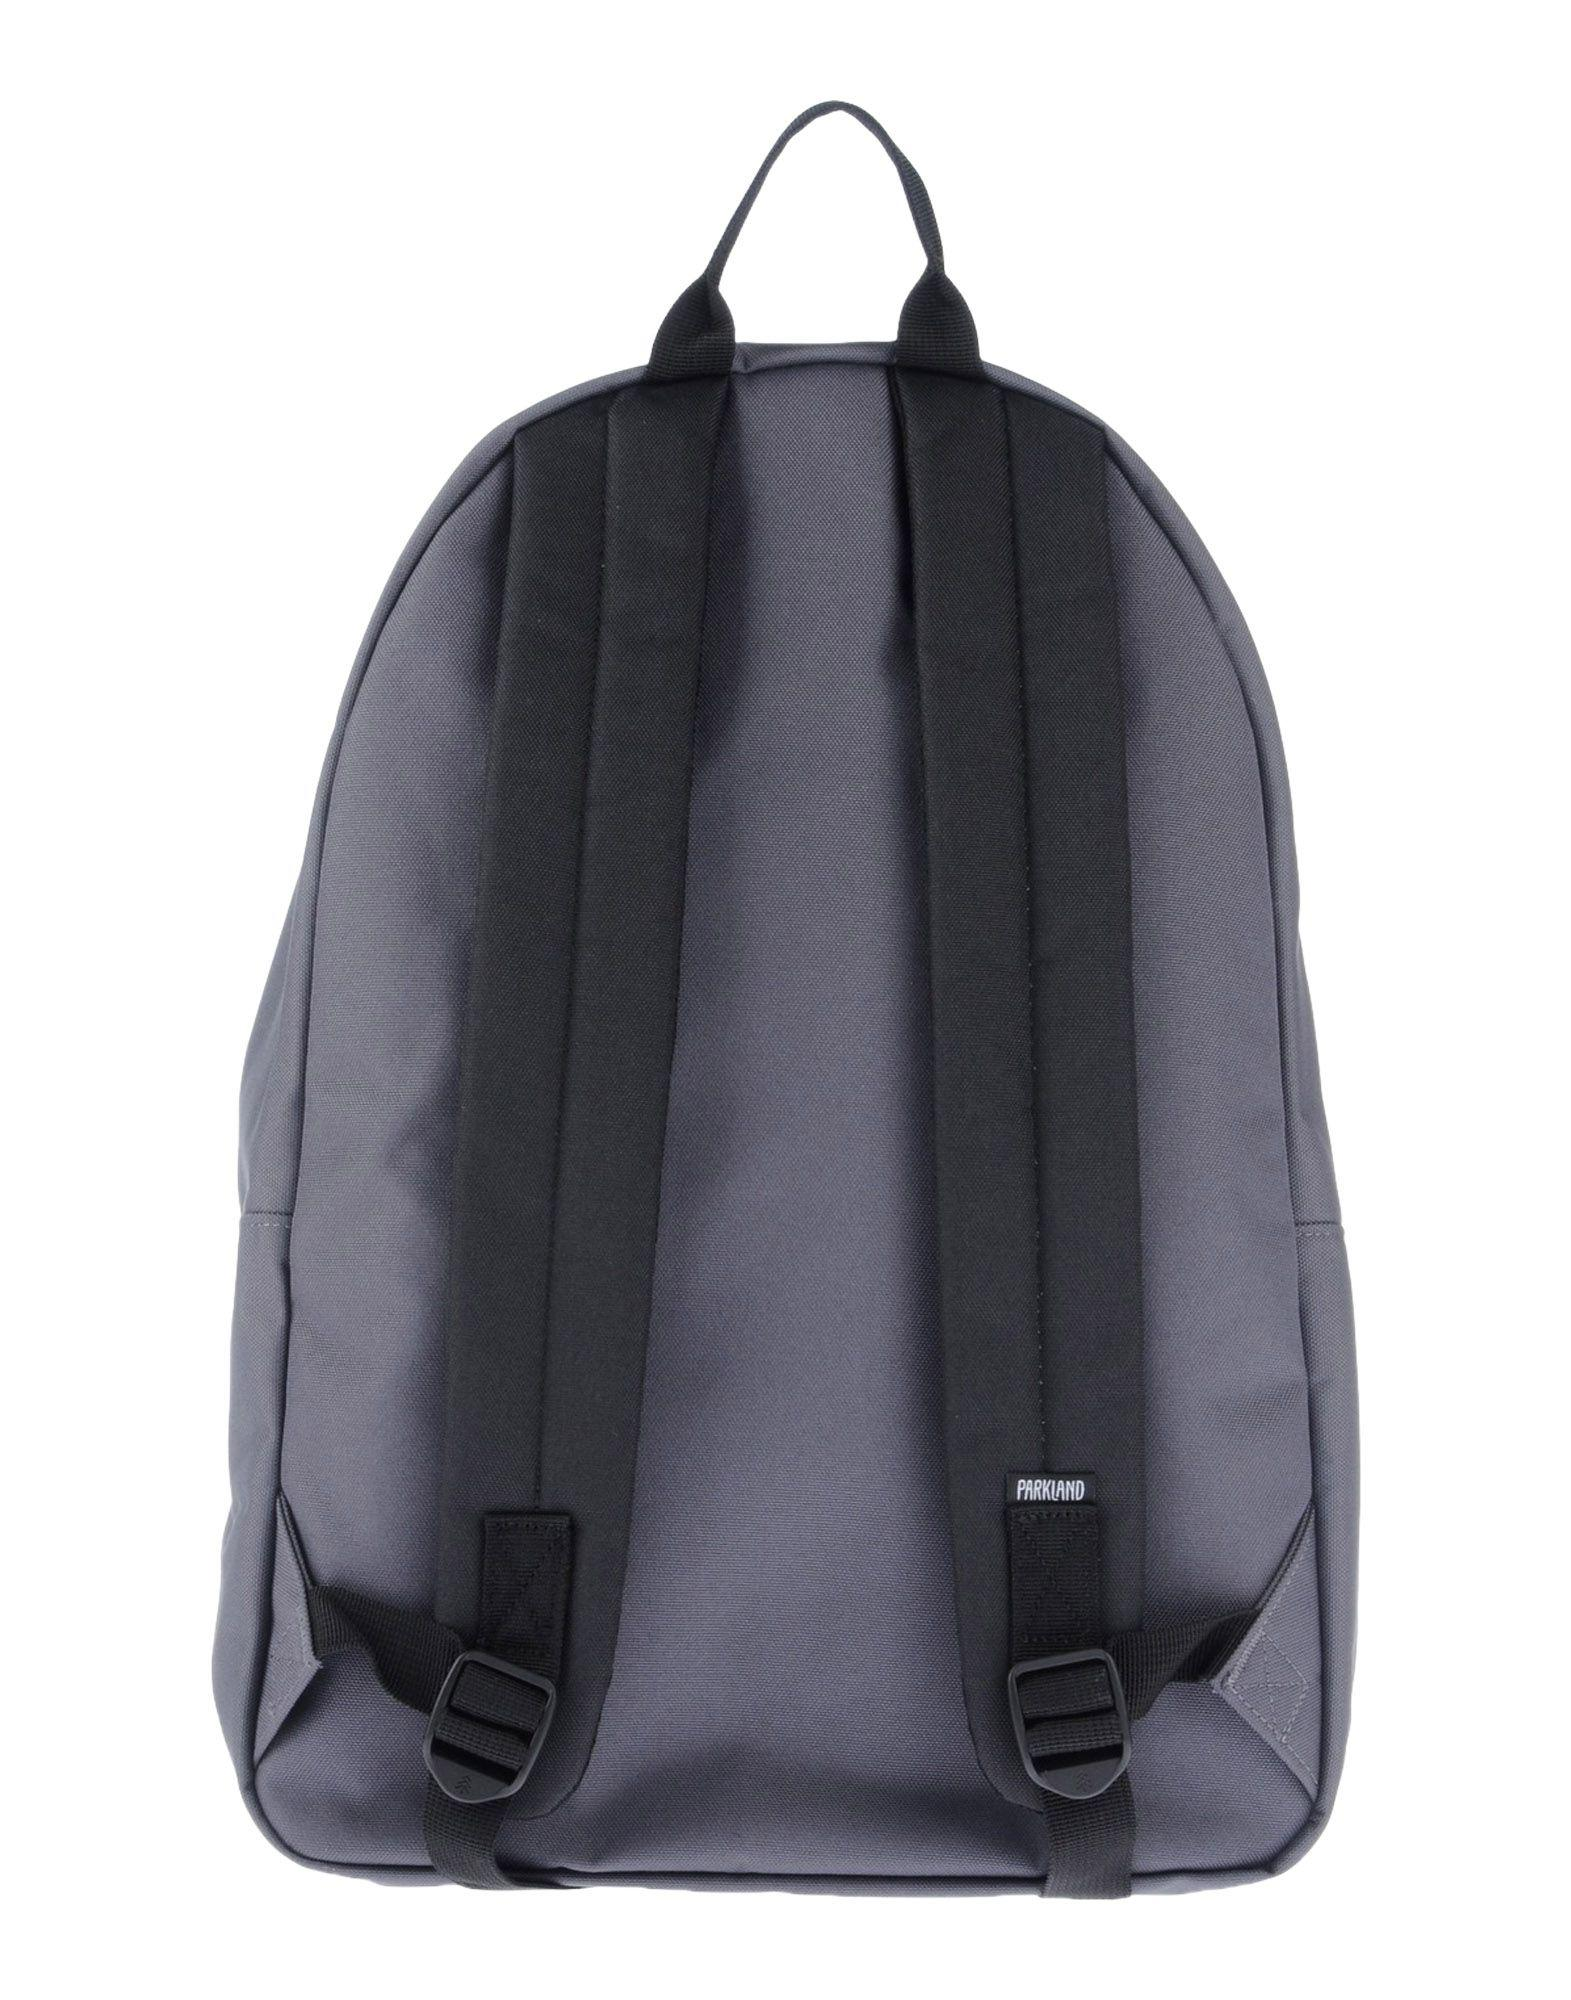 Parkland Leather Backpacks & Fanny Packs in Lead (Grey)